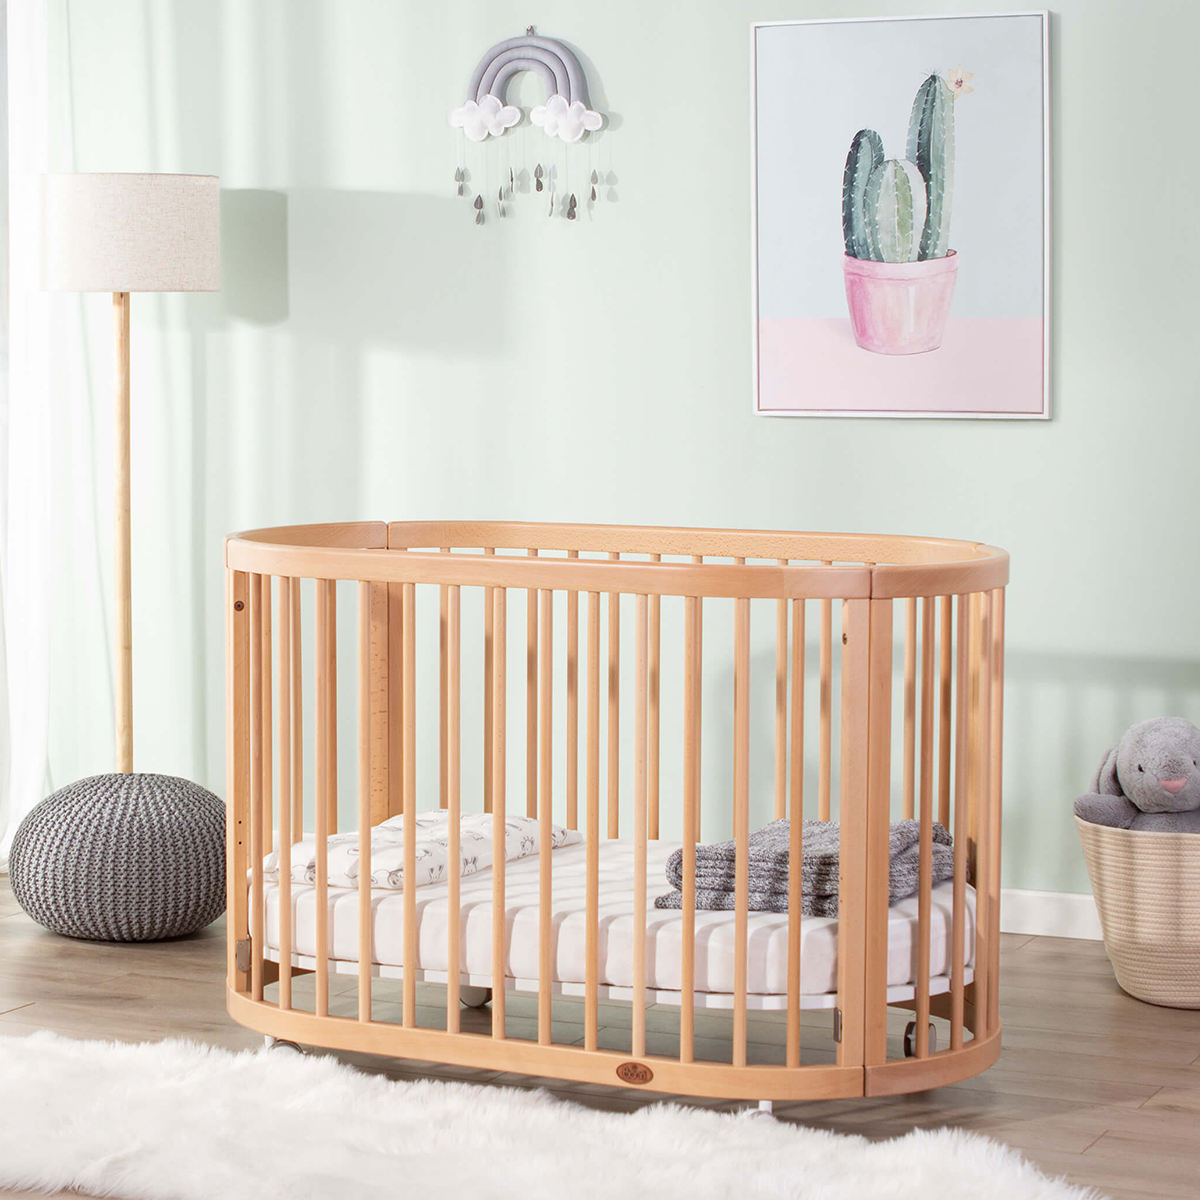 baby cribs multifunction OEM ODM factory beech wood natural round oval baby cot bed baby furniture modern wooden cot design